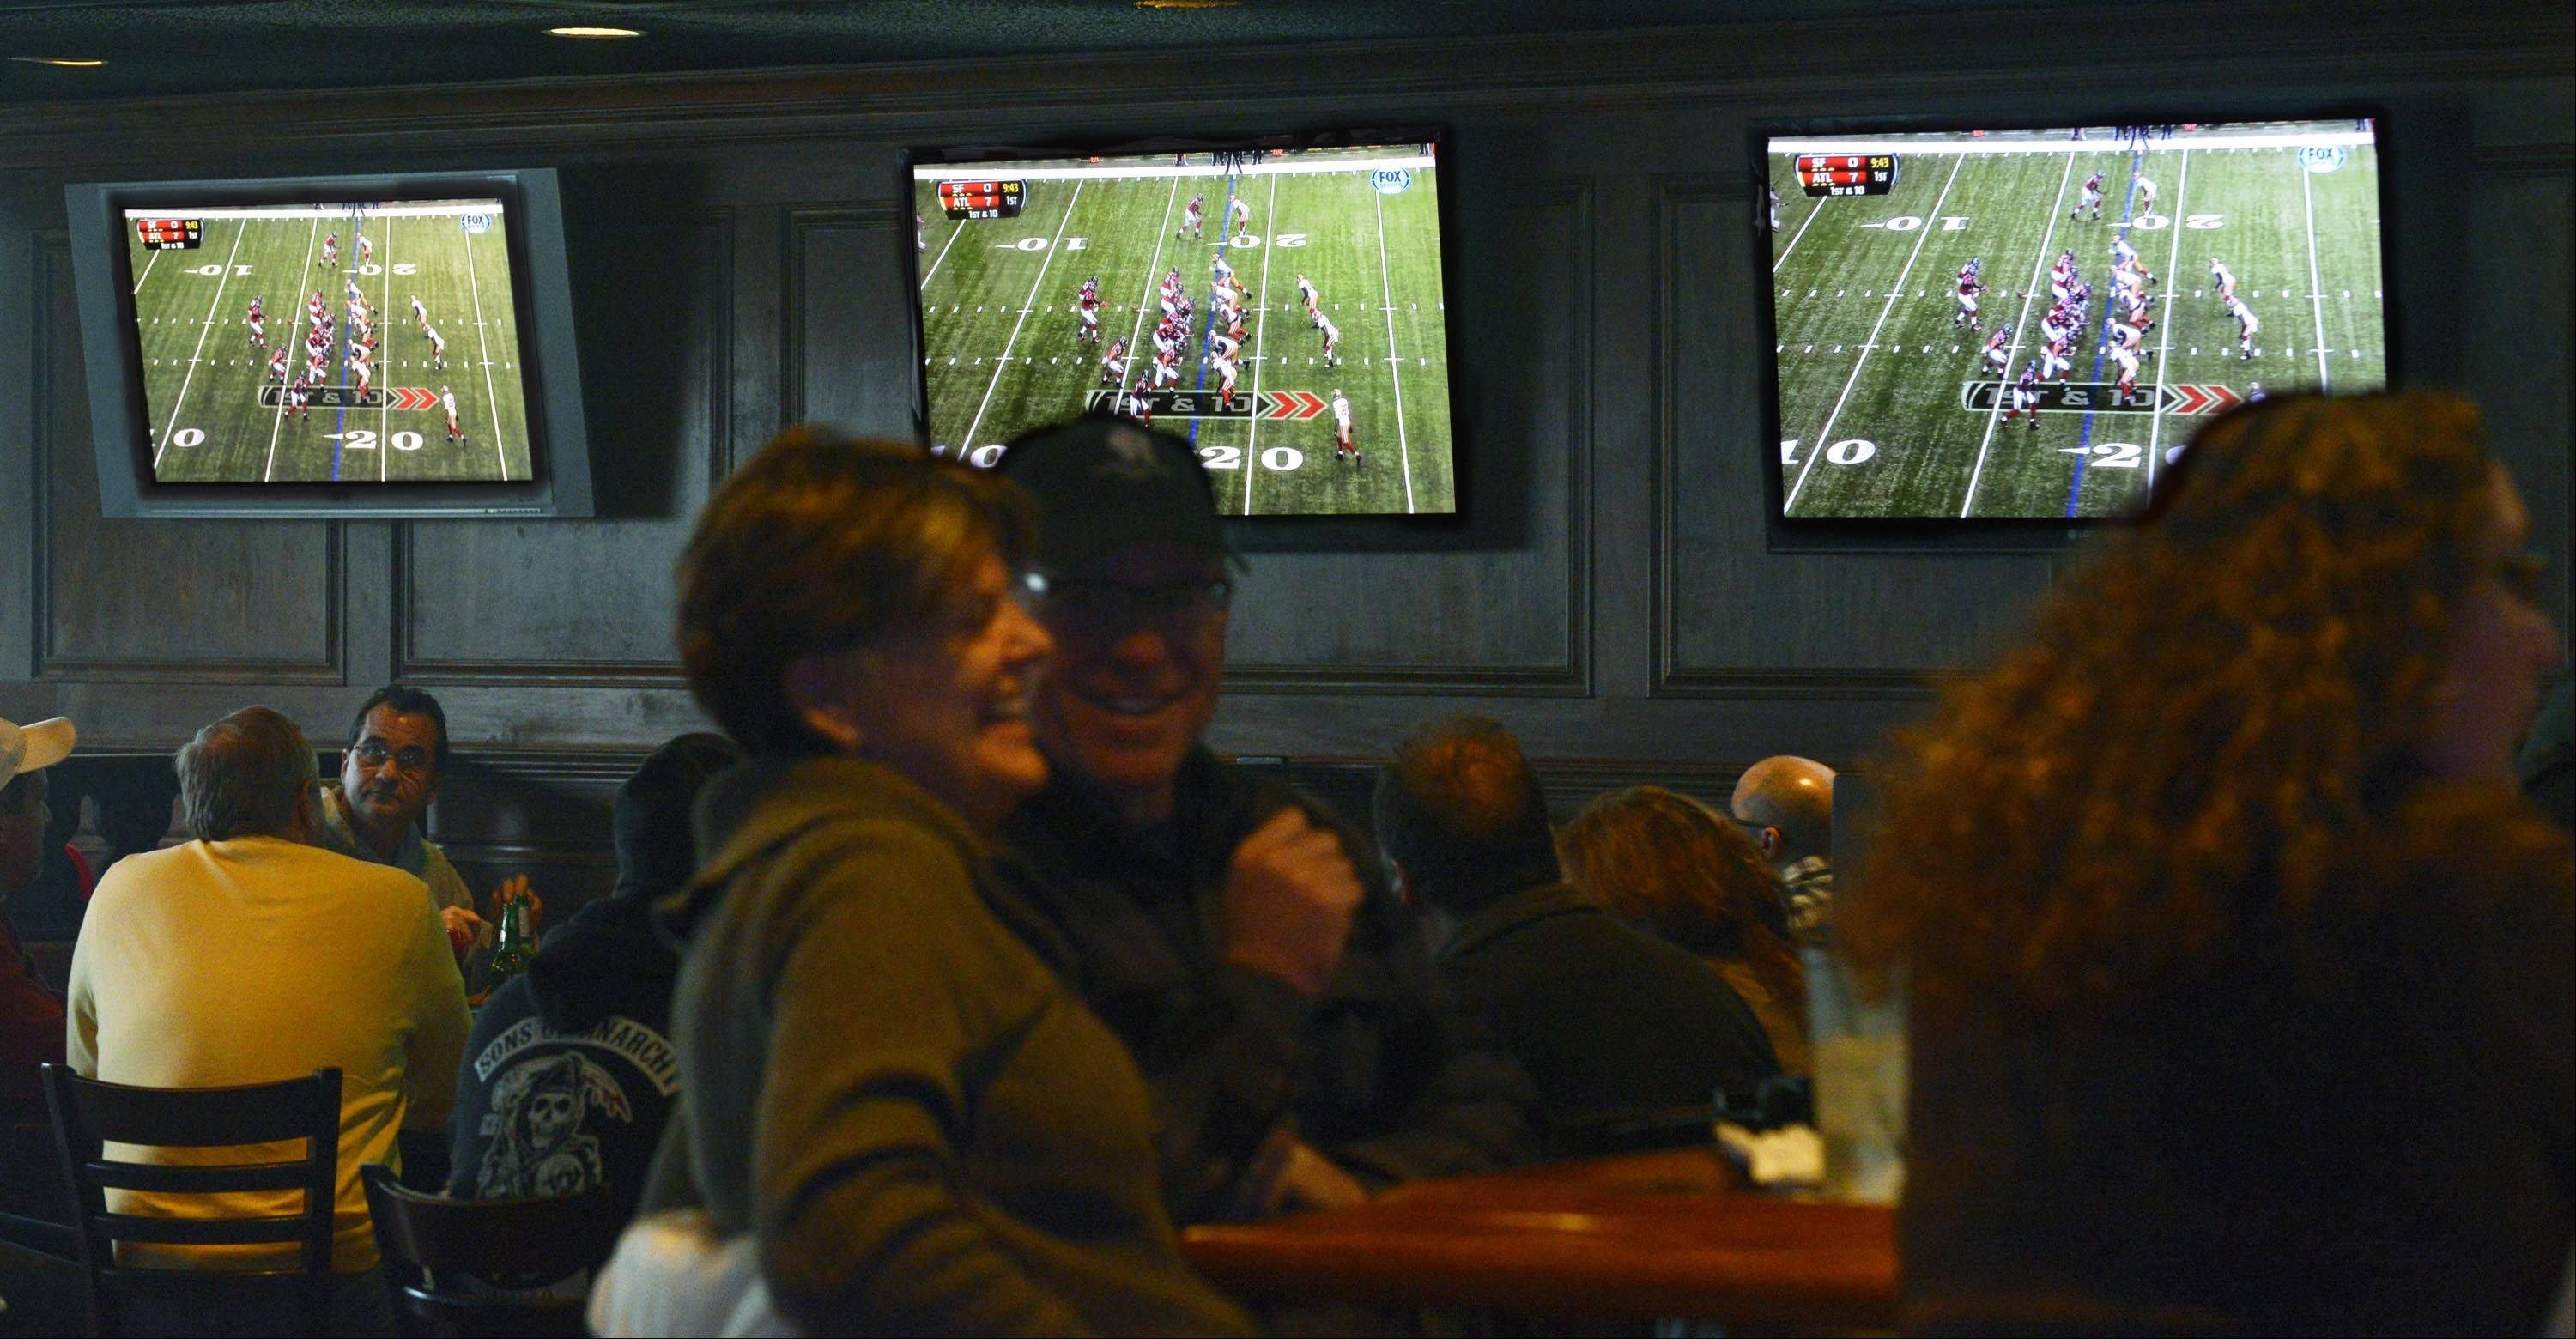 Sports fans can catch the Super Bowl on the dozens of big-screen TVs at Rookies in St. Charles.